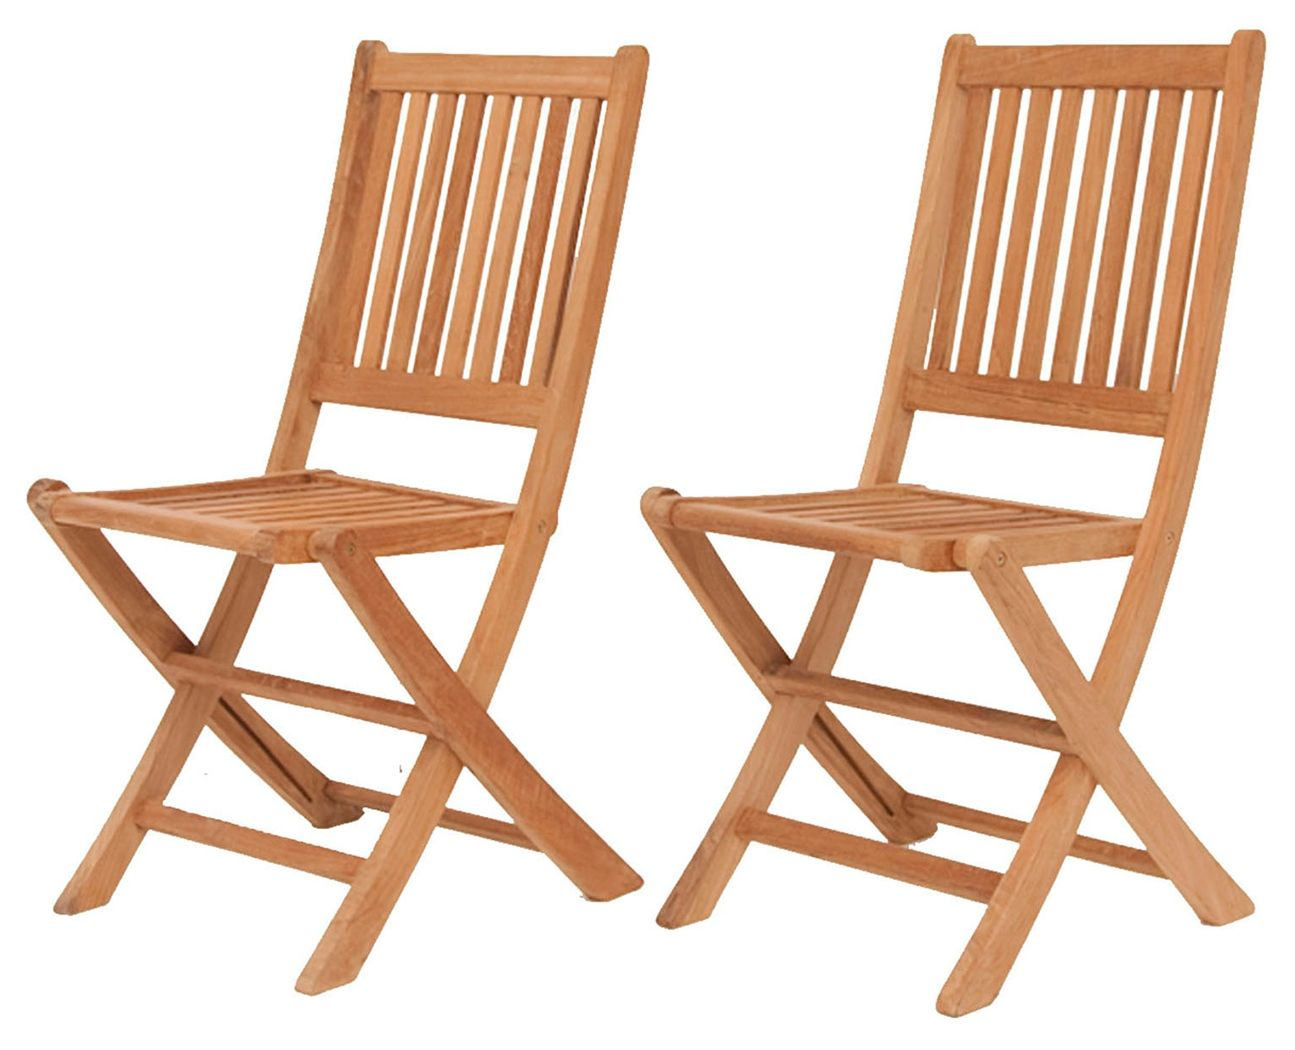 Fantastic Teak Folding Chairs With Vertical Slats Set Of 2 Brown Andrewgaddart Wooden Chair Designs For Living Room Andrewgaddartcom